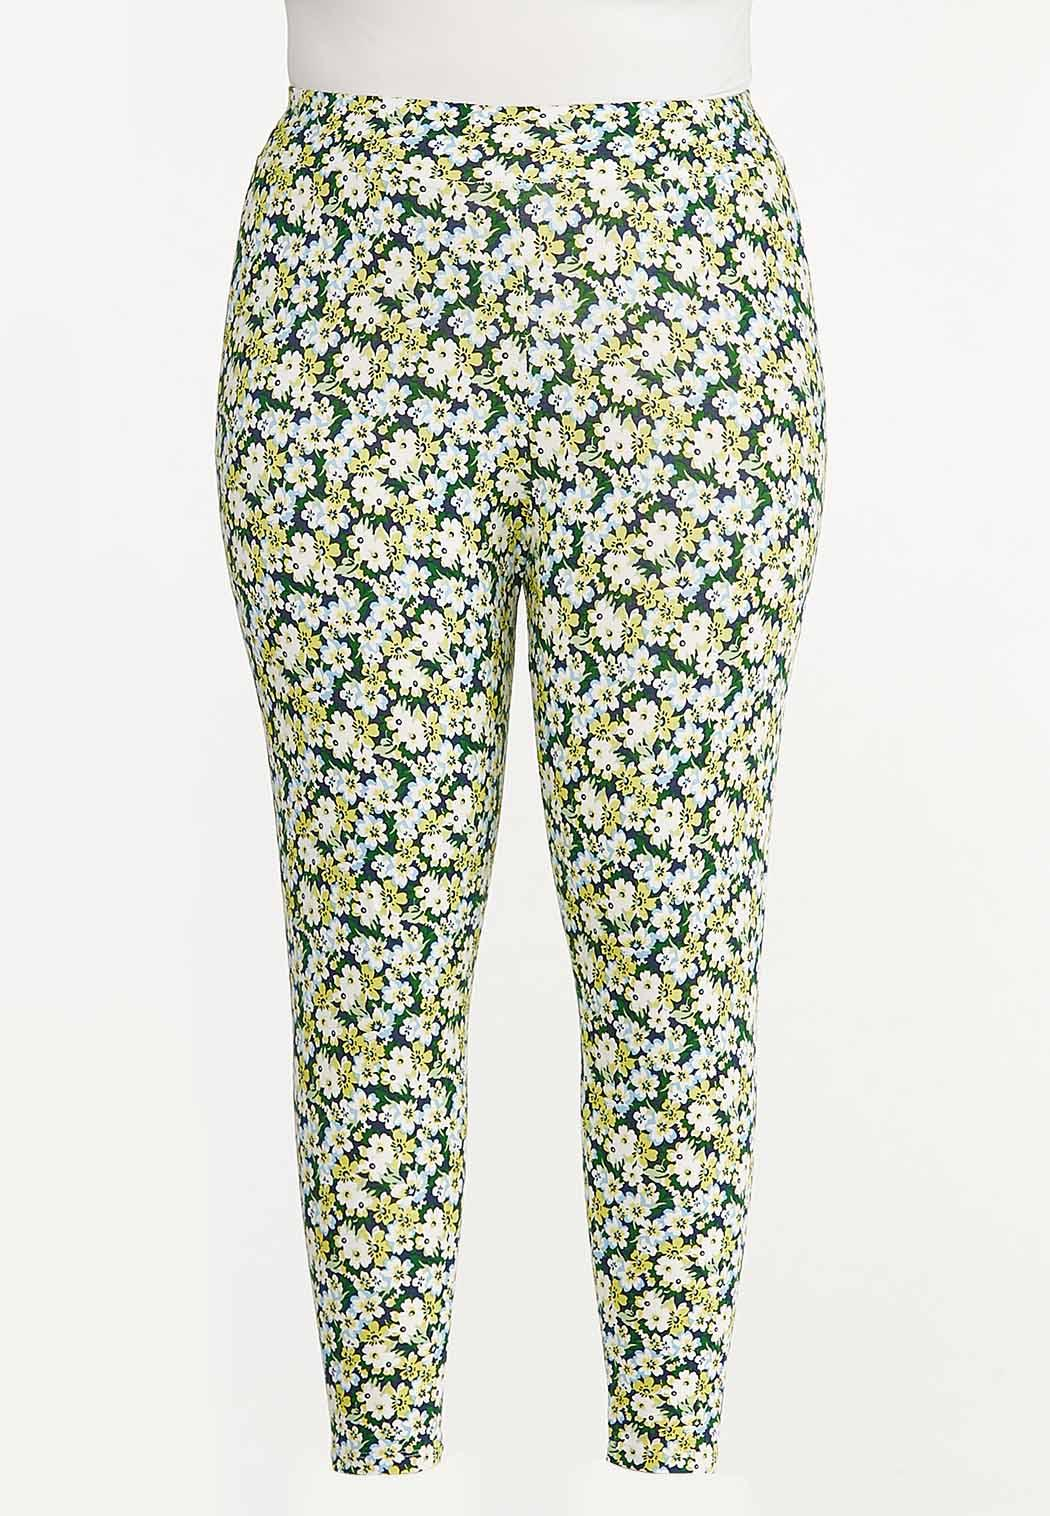 Plus Size Cropped Spring Floral Leggings